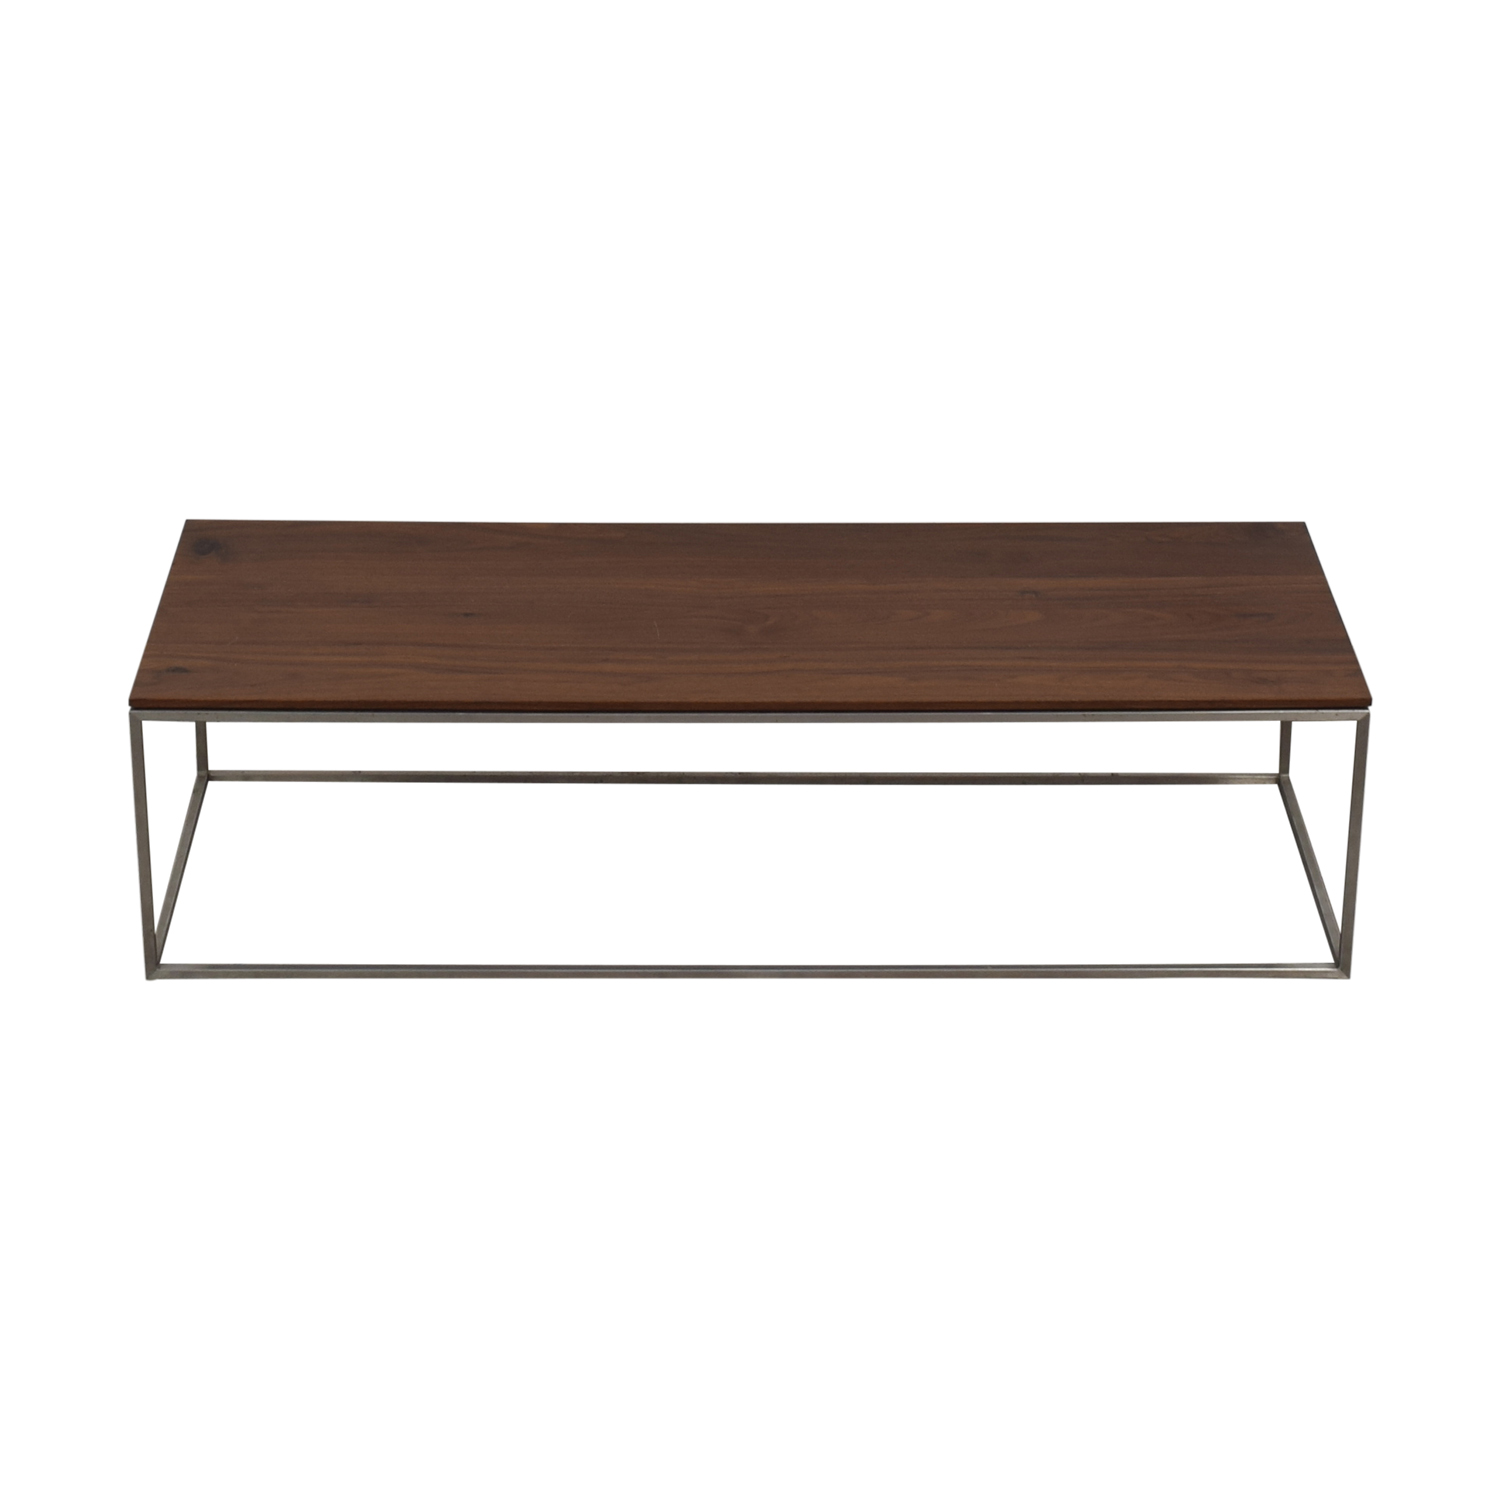 buy Crate & Barrel Frame Coffee Table Crate & Barrel Tables